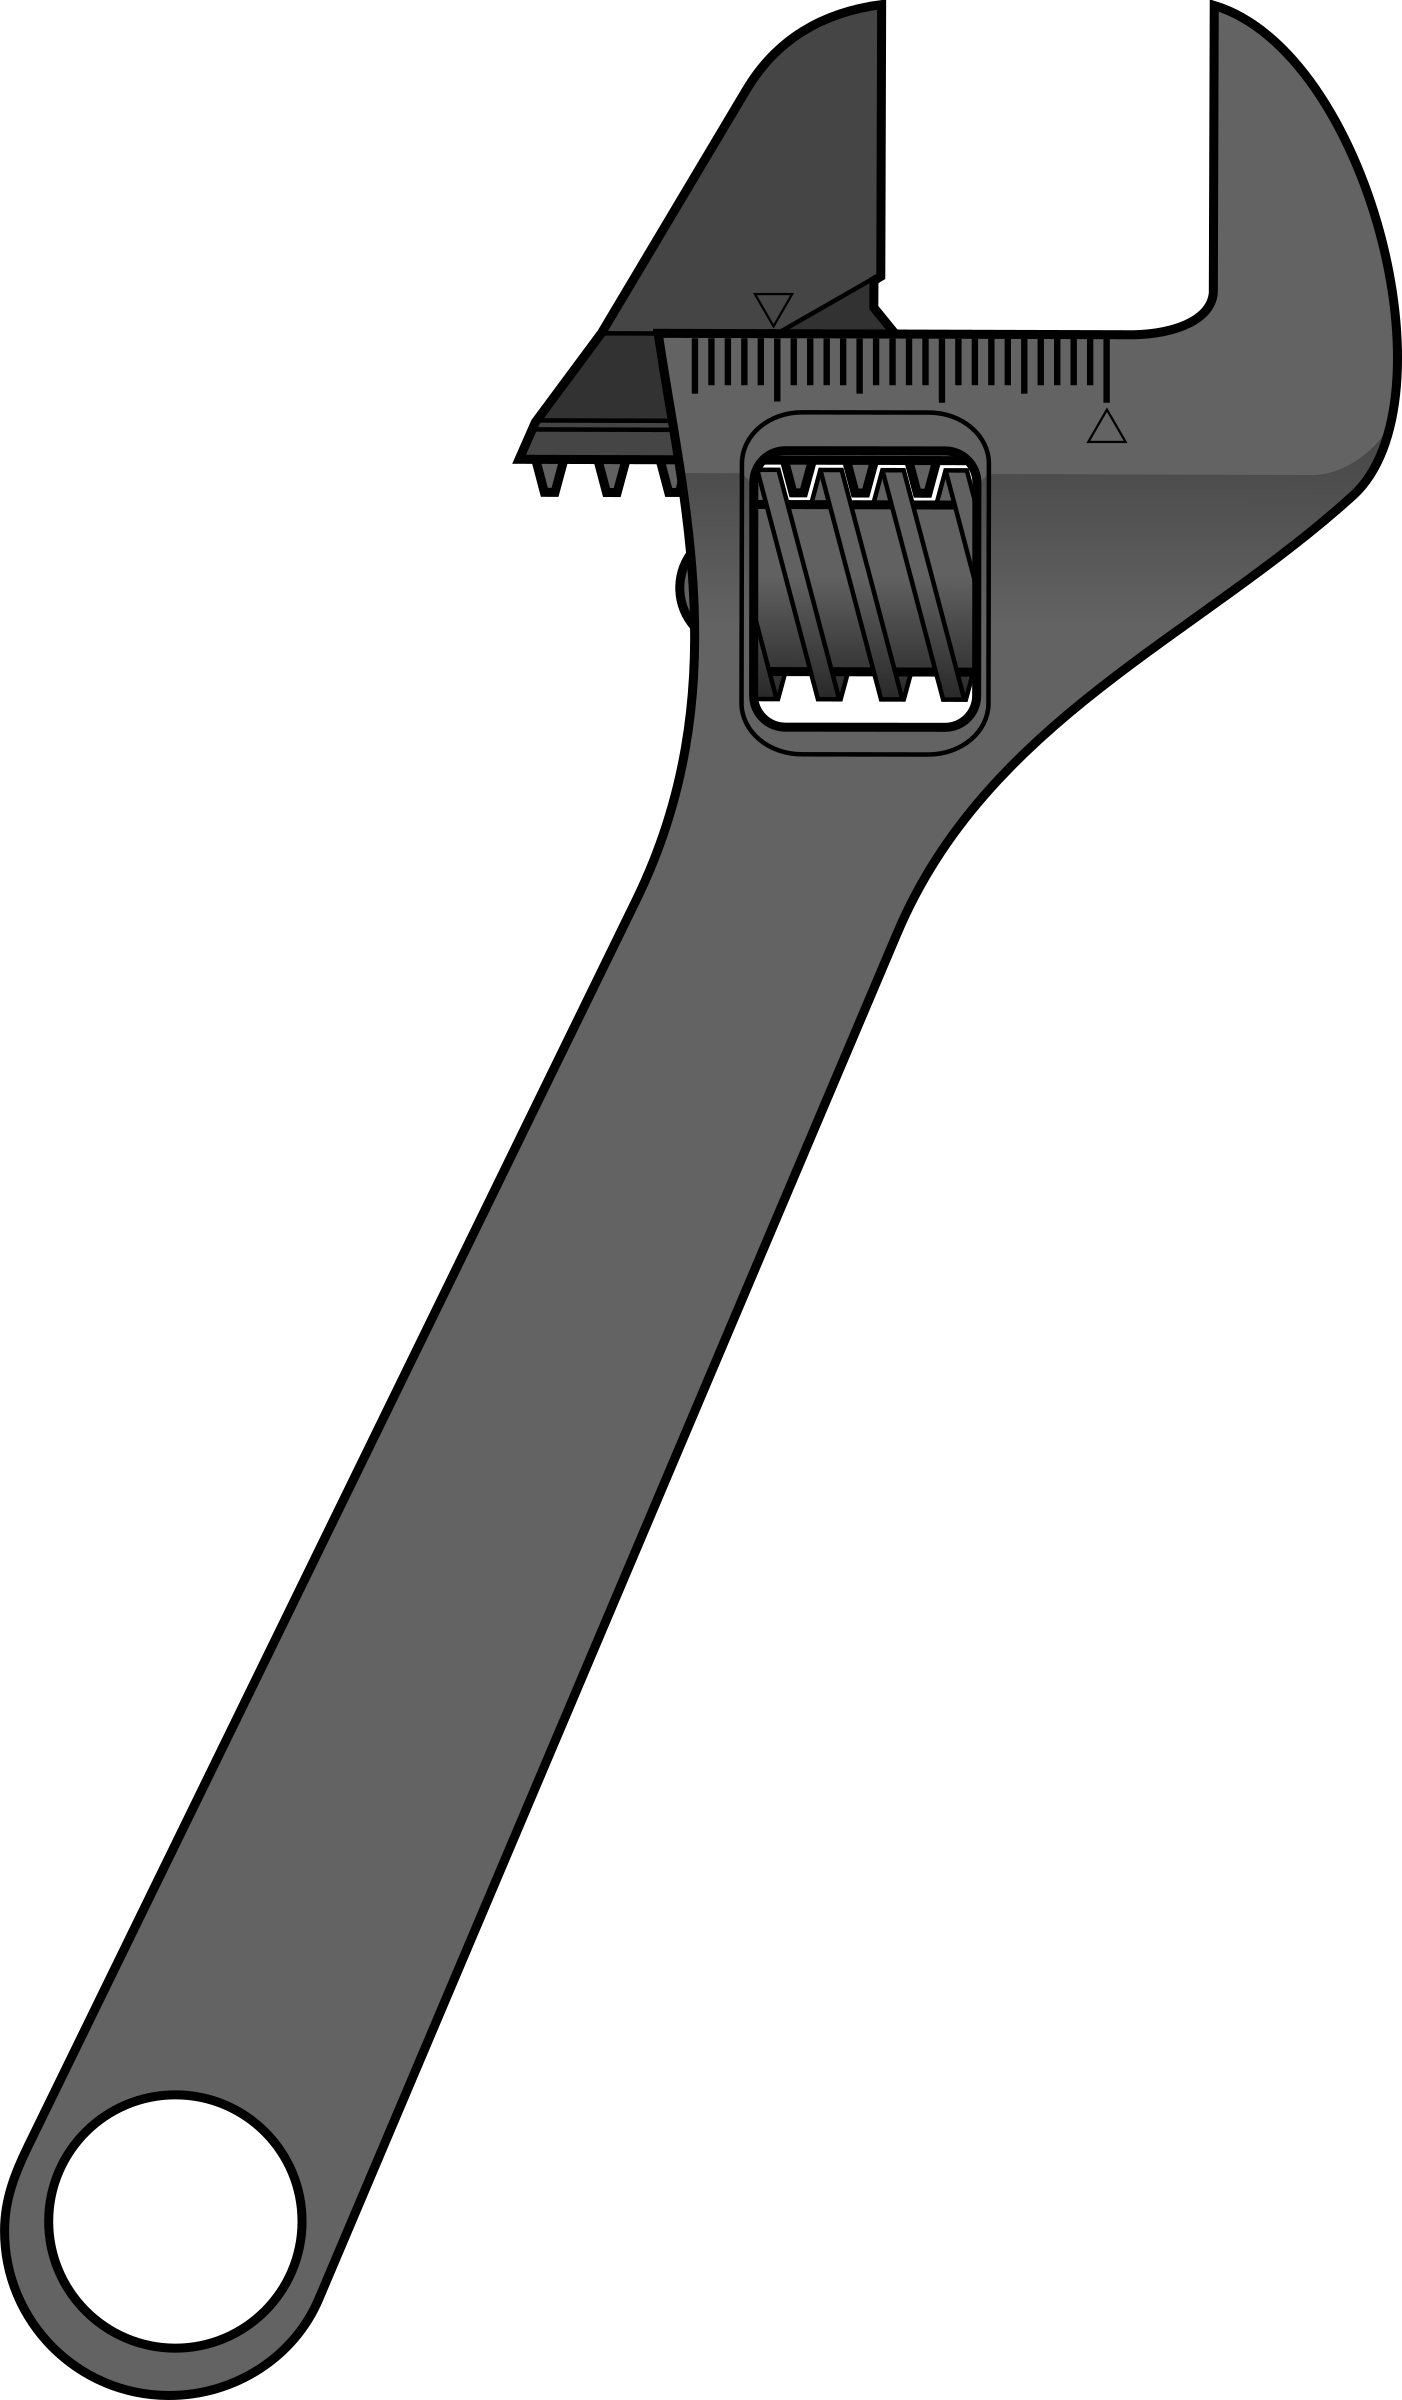 Box Wrench Clipart Clipart Adjustable Wrench #ZMnDke.